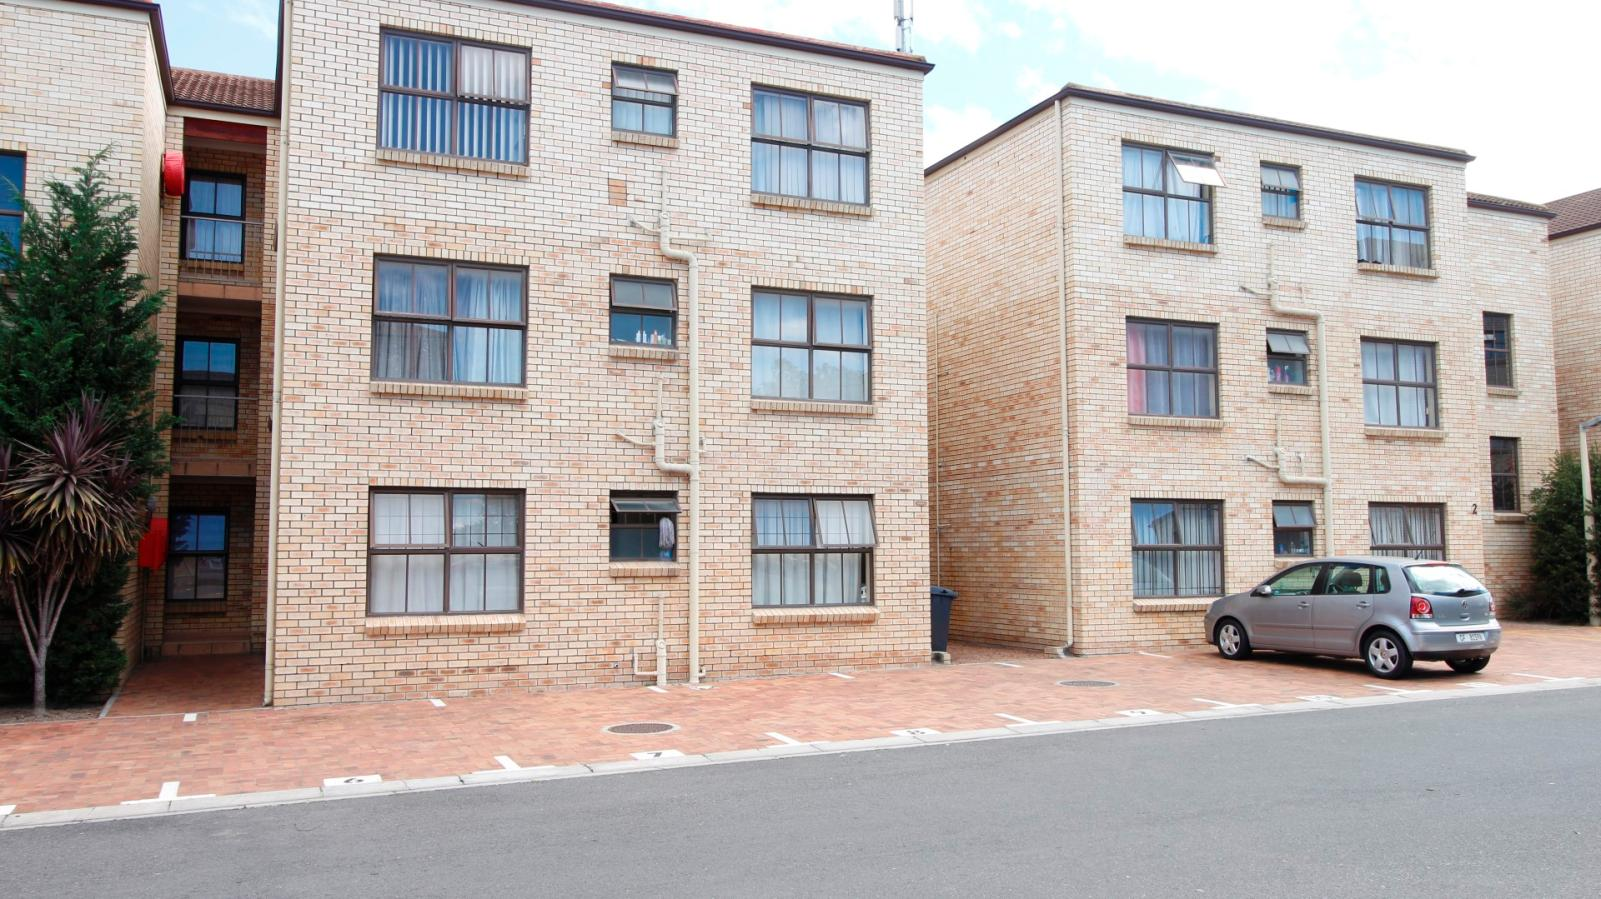 2 Bedroom apartment for sale in Morgenster